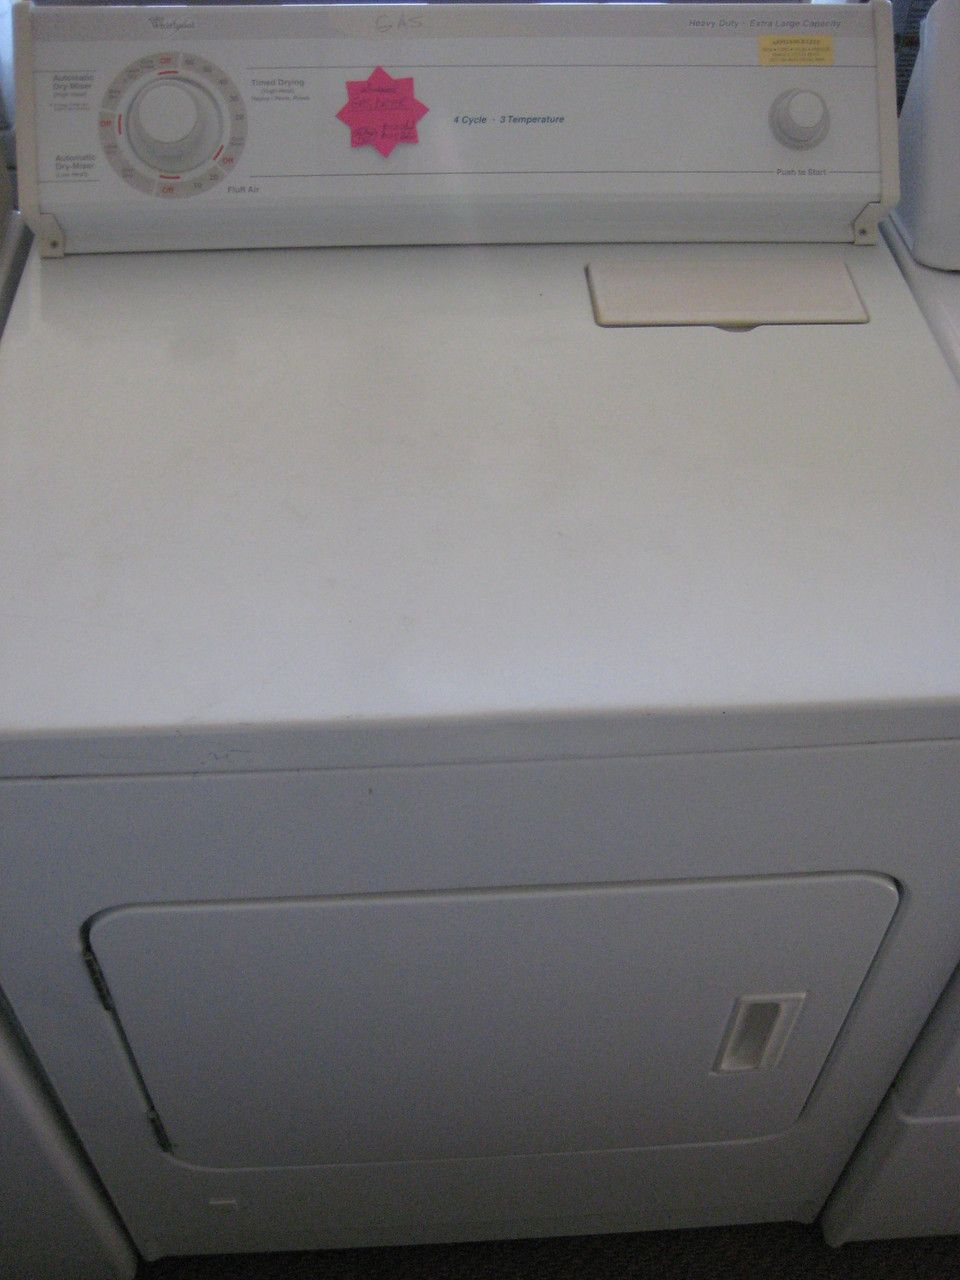 WHIRLPOOL GAS DRYER 4 CYCLE 3 TEMPERATURE TOP FILTER HEAVY